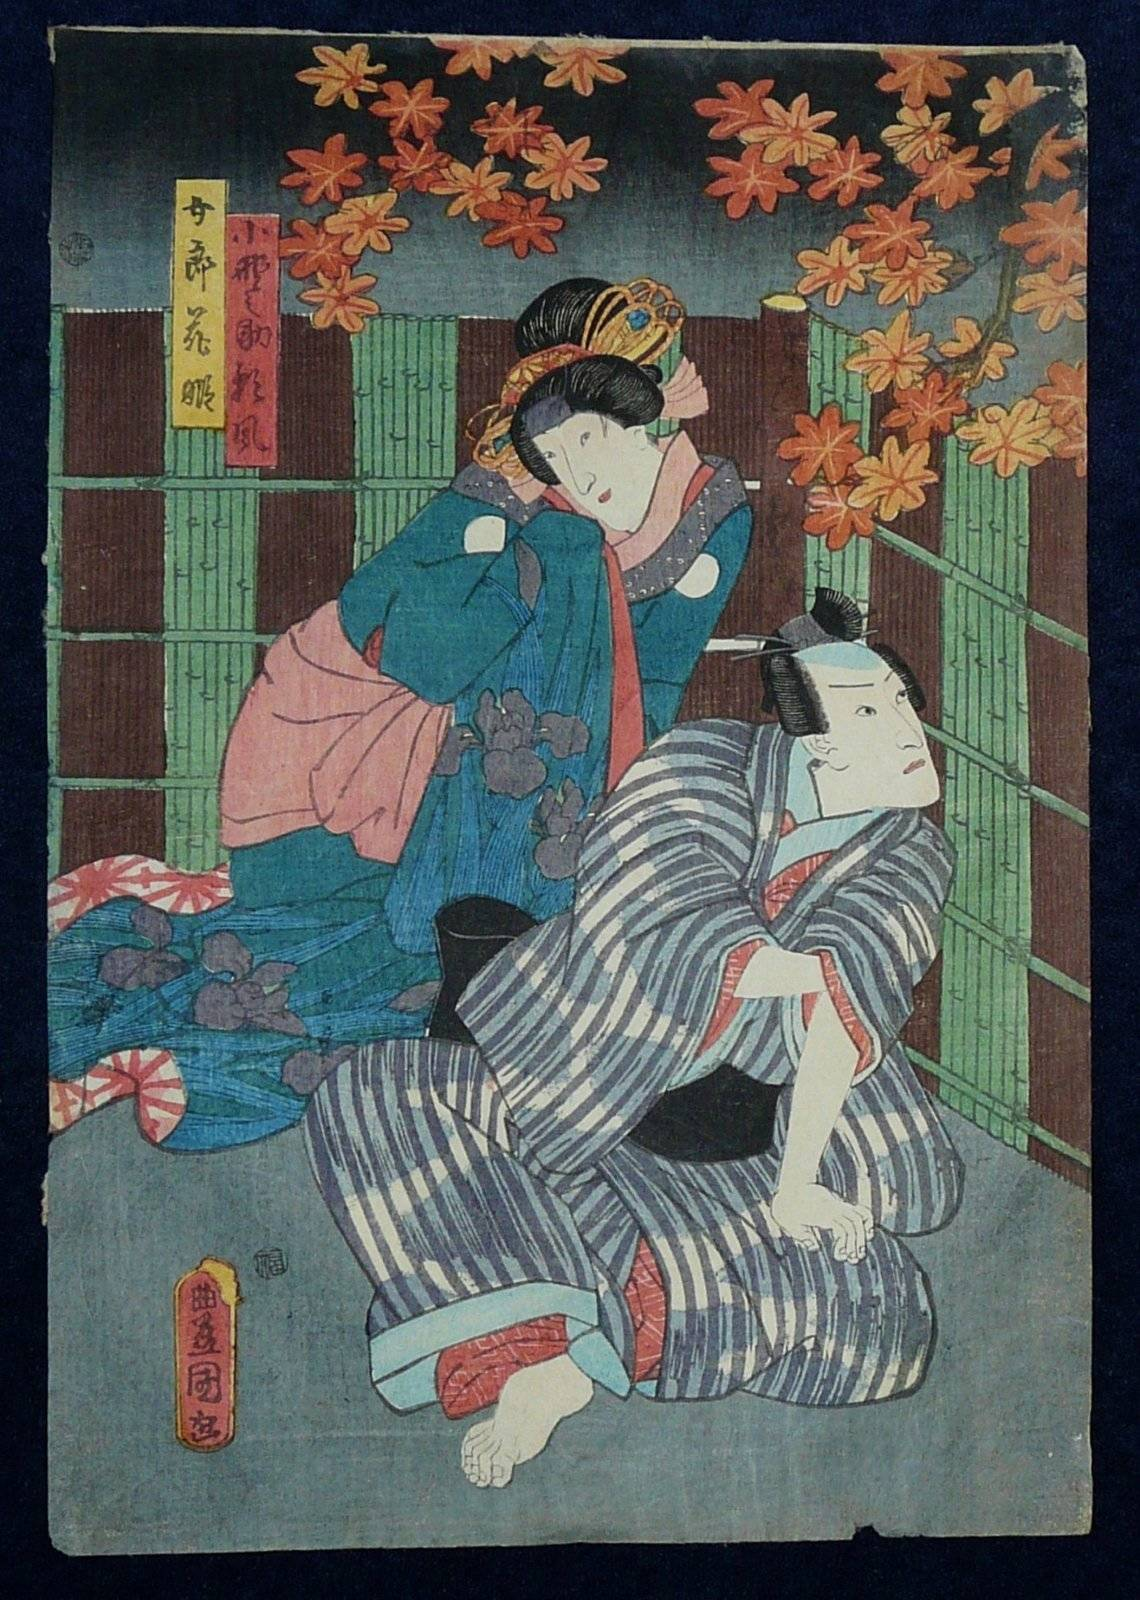 UTAGAWA KUNISADA: #P3864 NIGHT TIME MEETING IN THE GARDEN Circa 1850